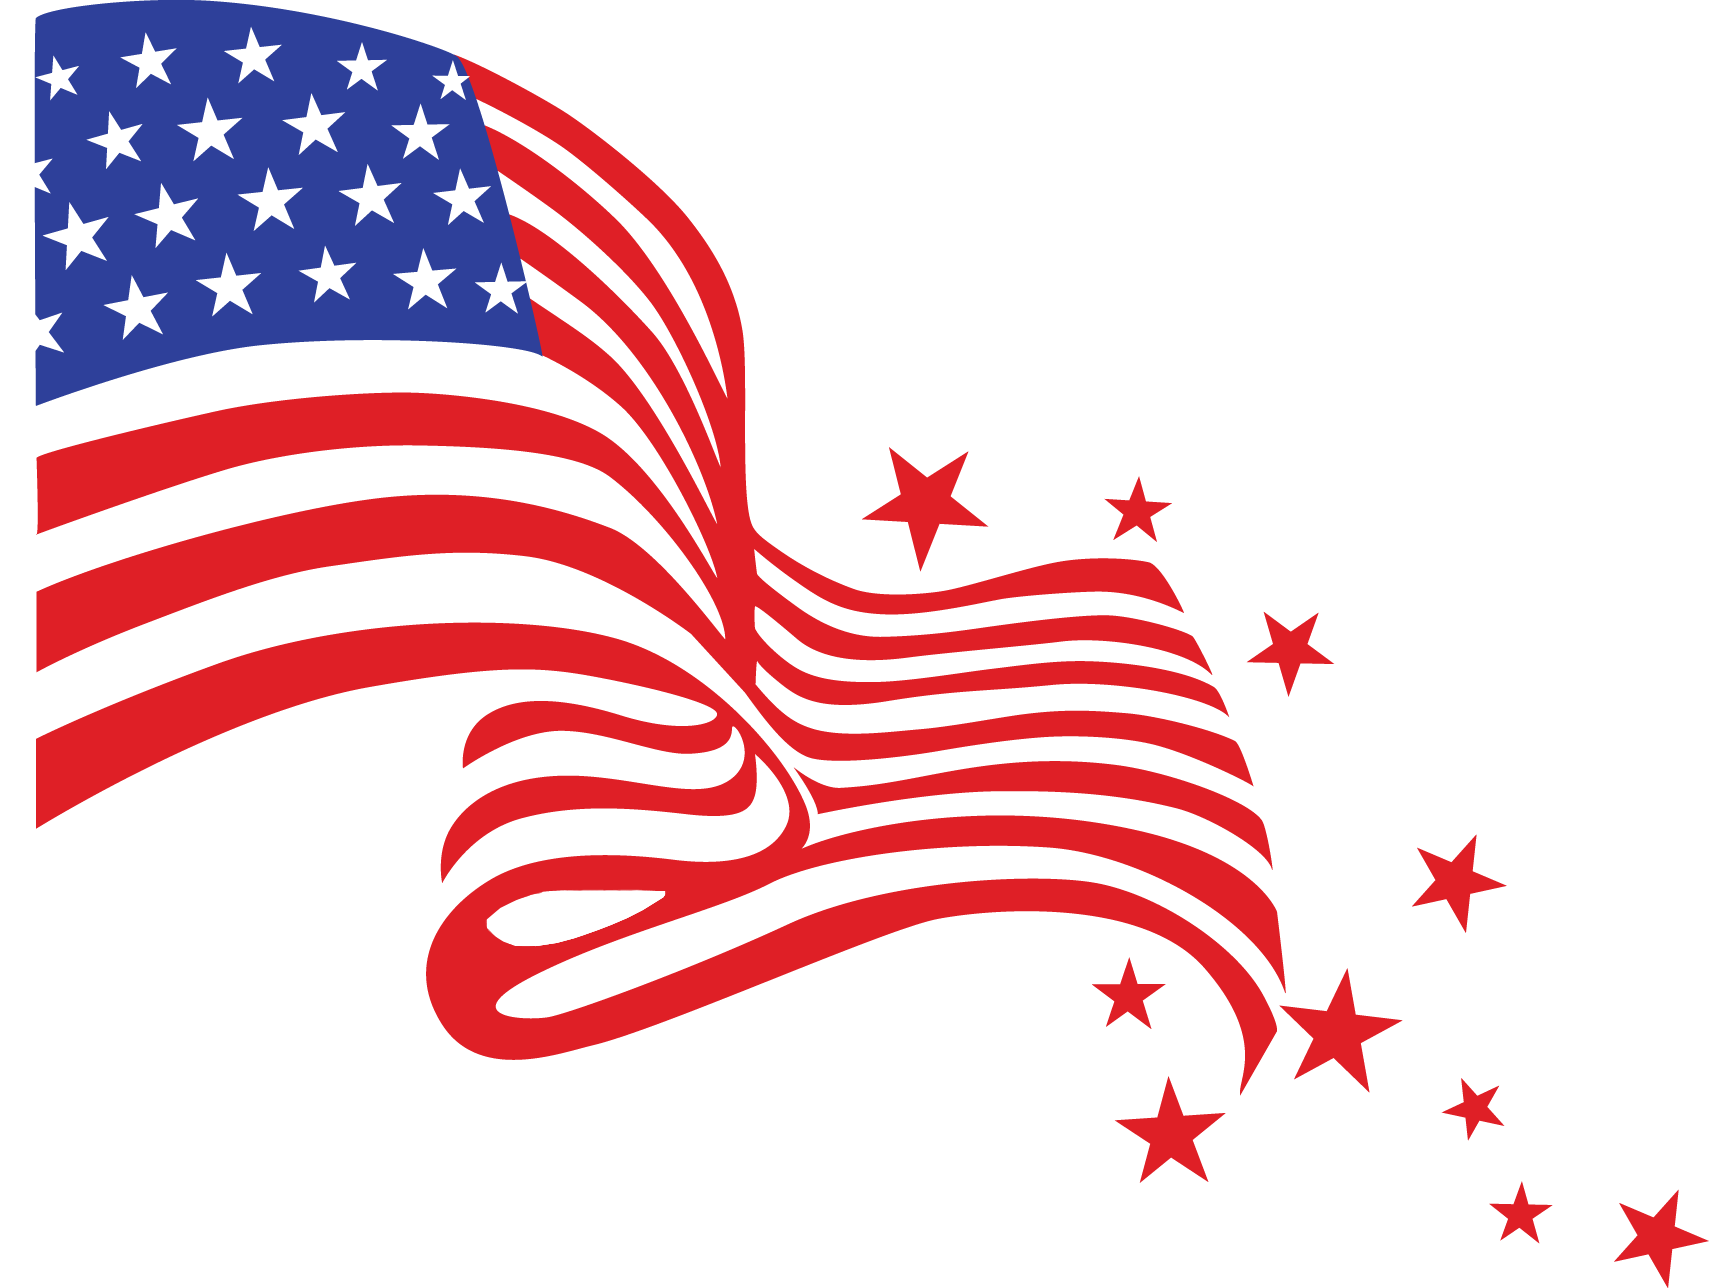 Transparent usa flag png. Independence clipart image free download